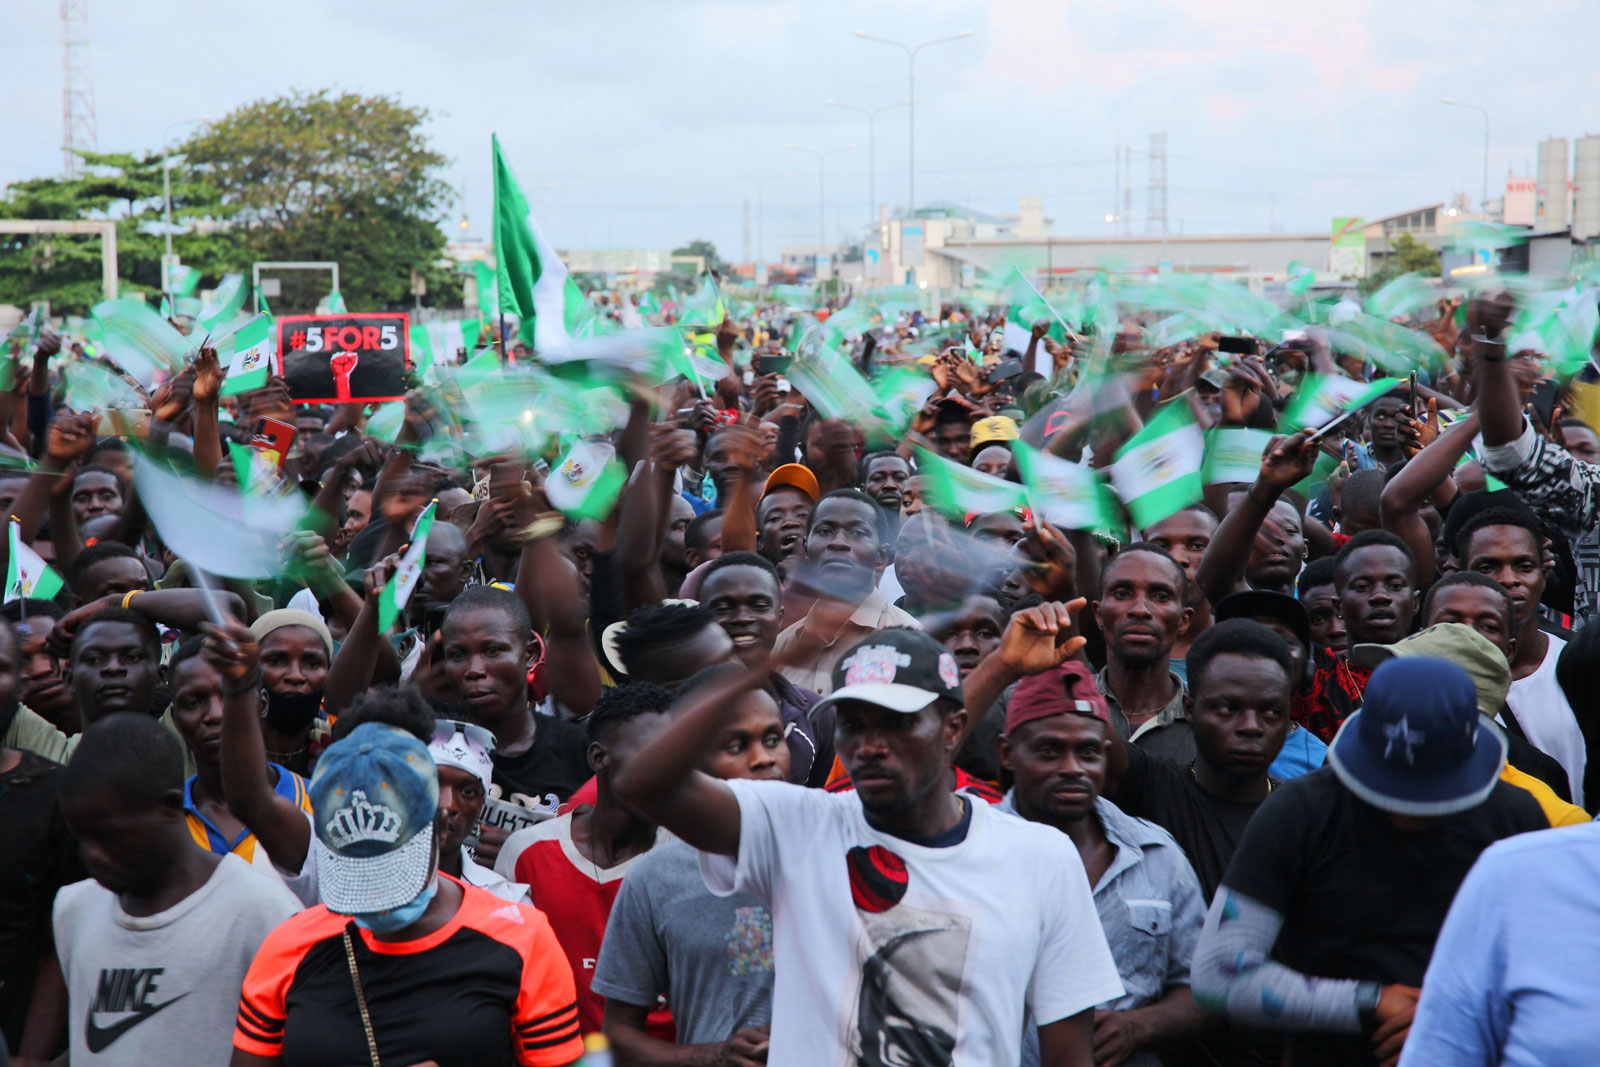 Protestors in Lagos, Nigeria, wave Nigerian flags for the #EndSARS movement against police brutality